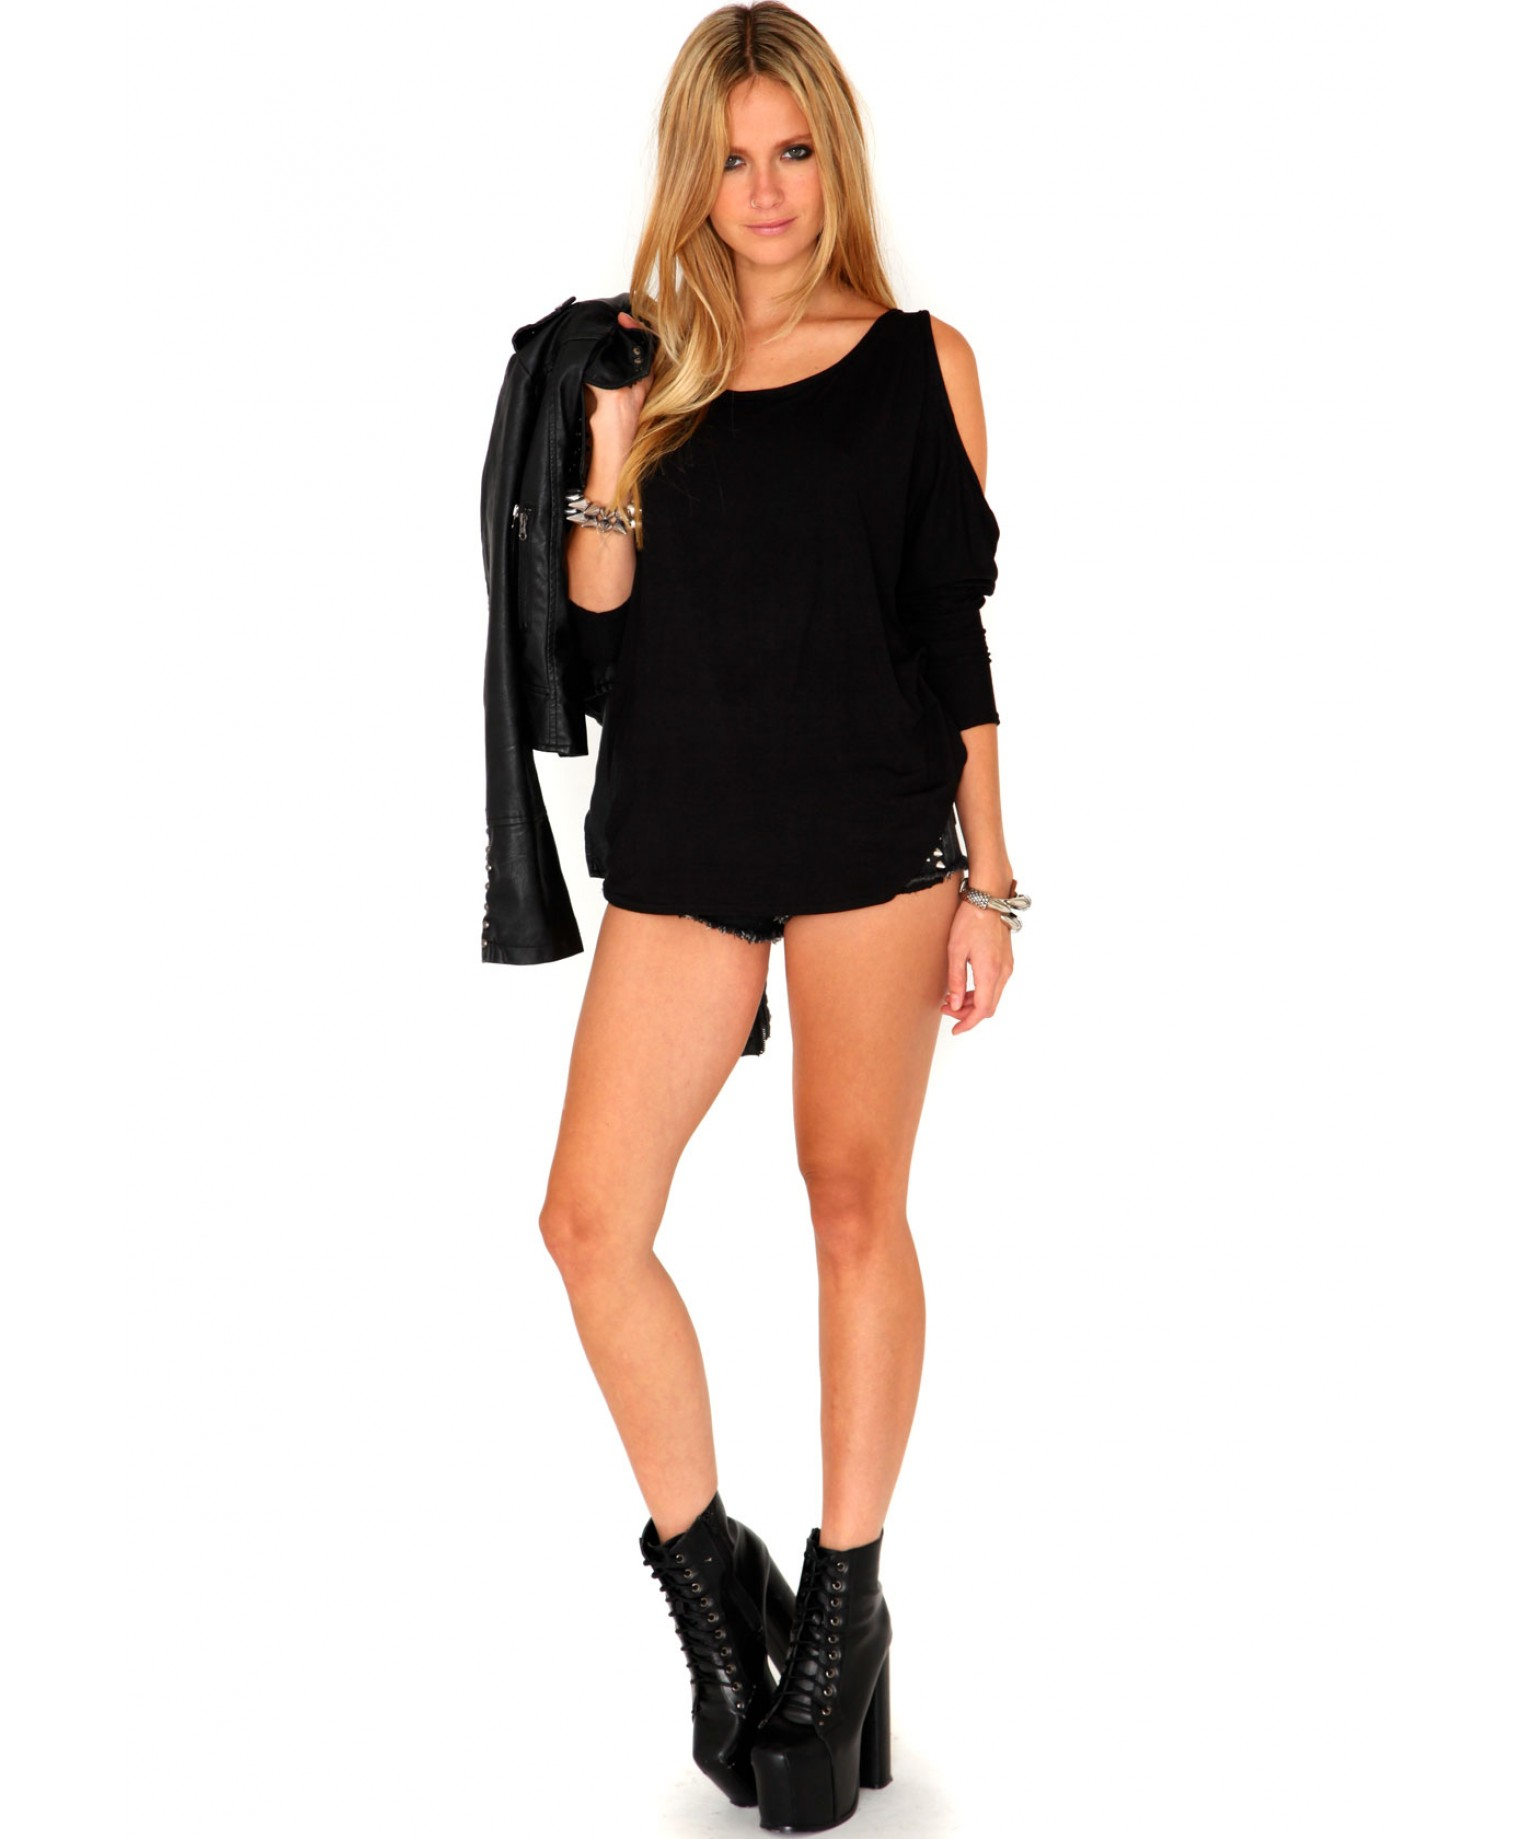 0ad34f3a12b464 Lyst - Missguided Laile Cut Out Shoulder Top in Black in Black